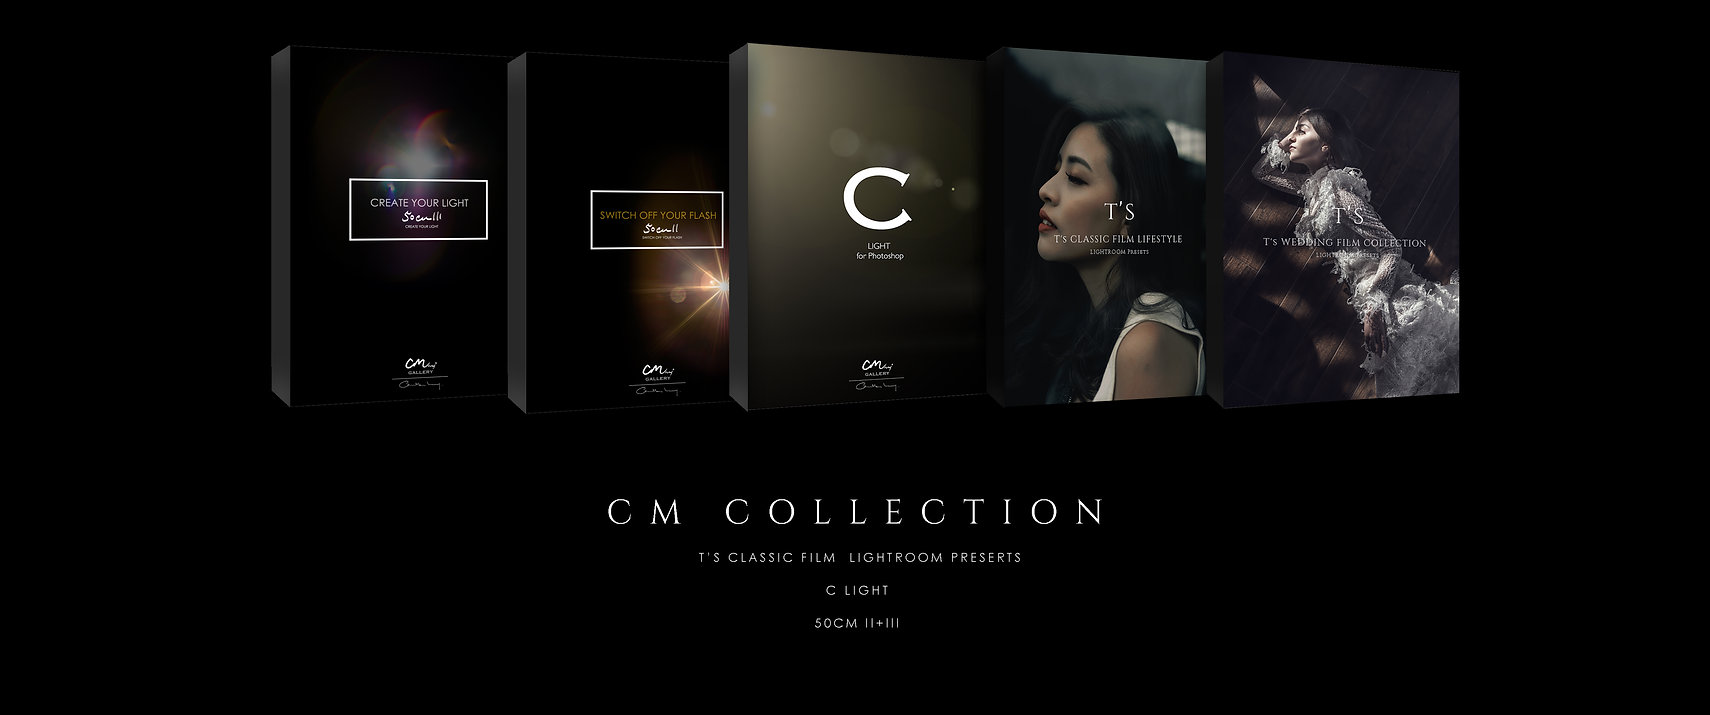 cmcollectionposter.jpg